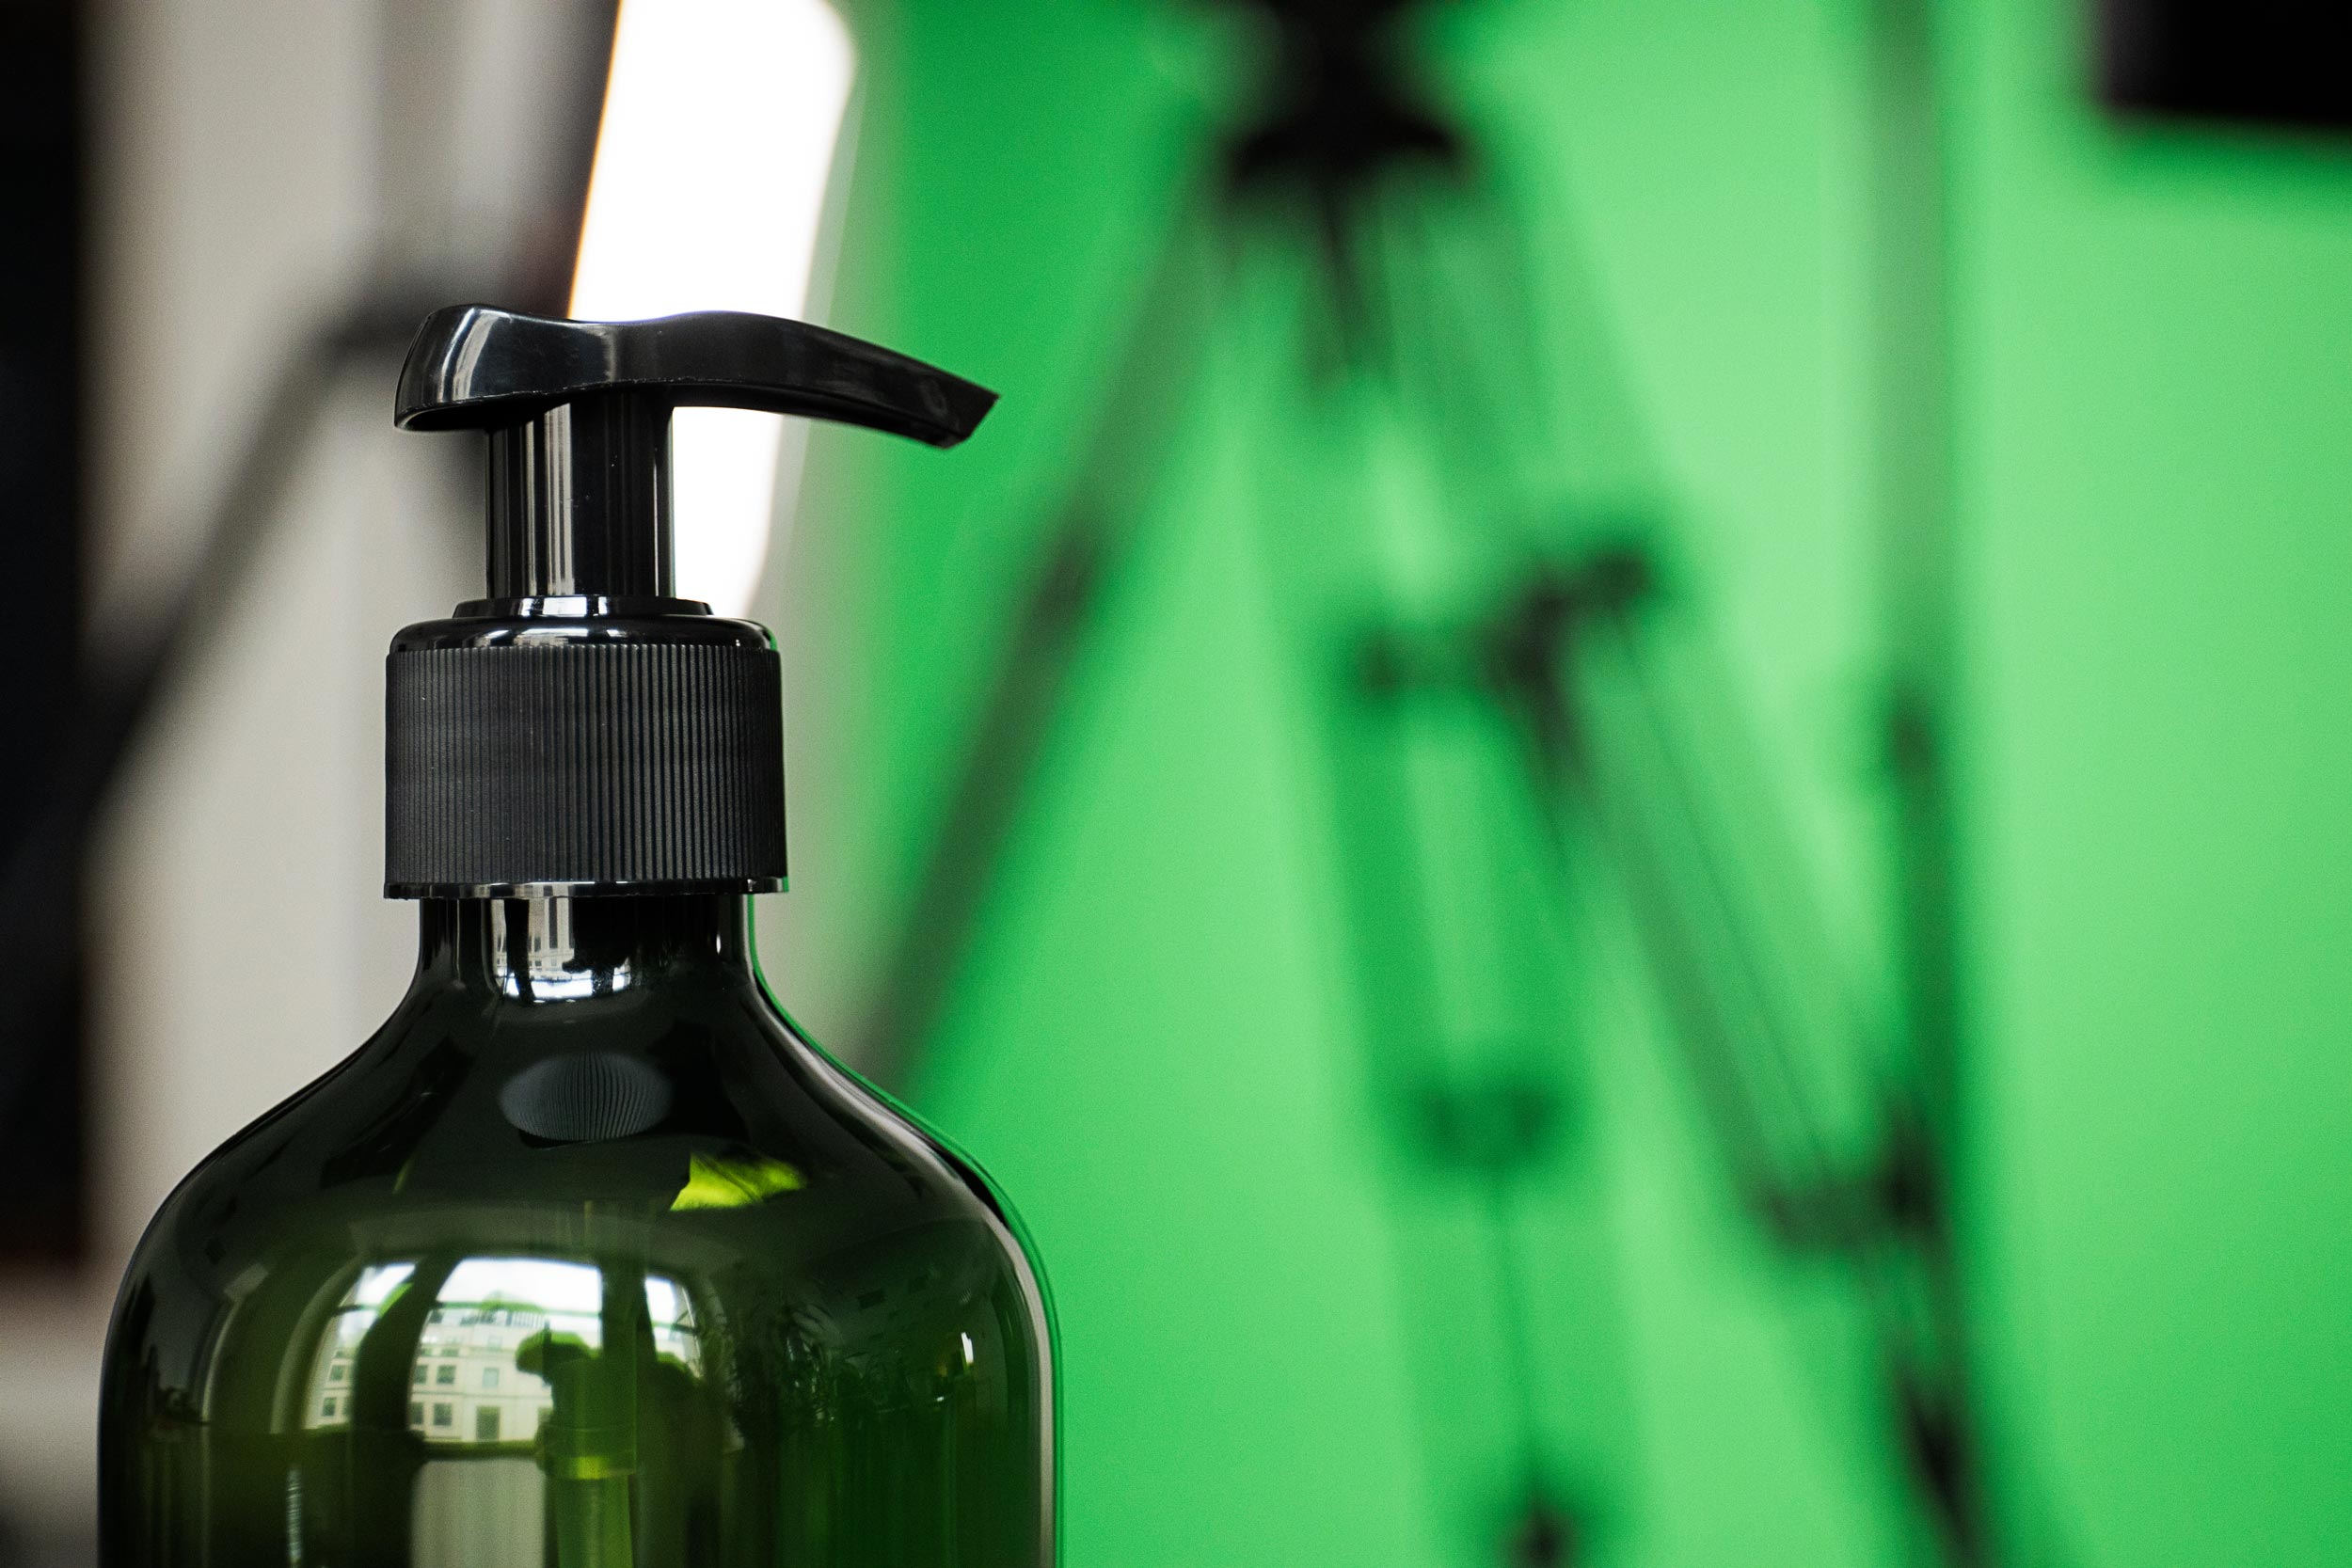 Close-up photograph of a bottle of hand sanitiser against a green screen backdrop.